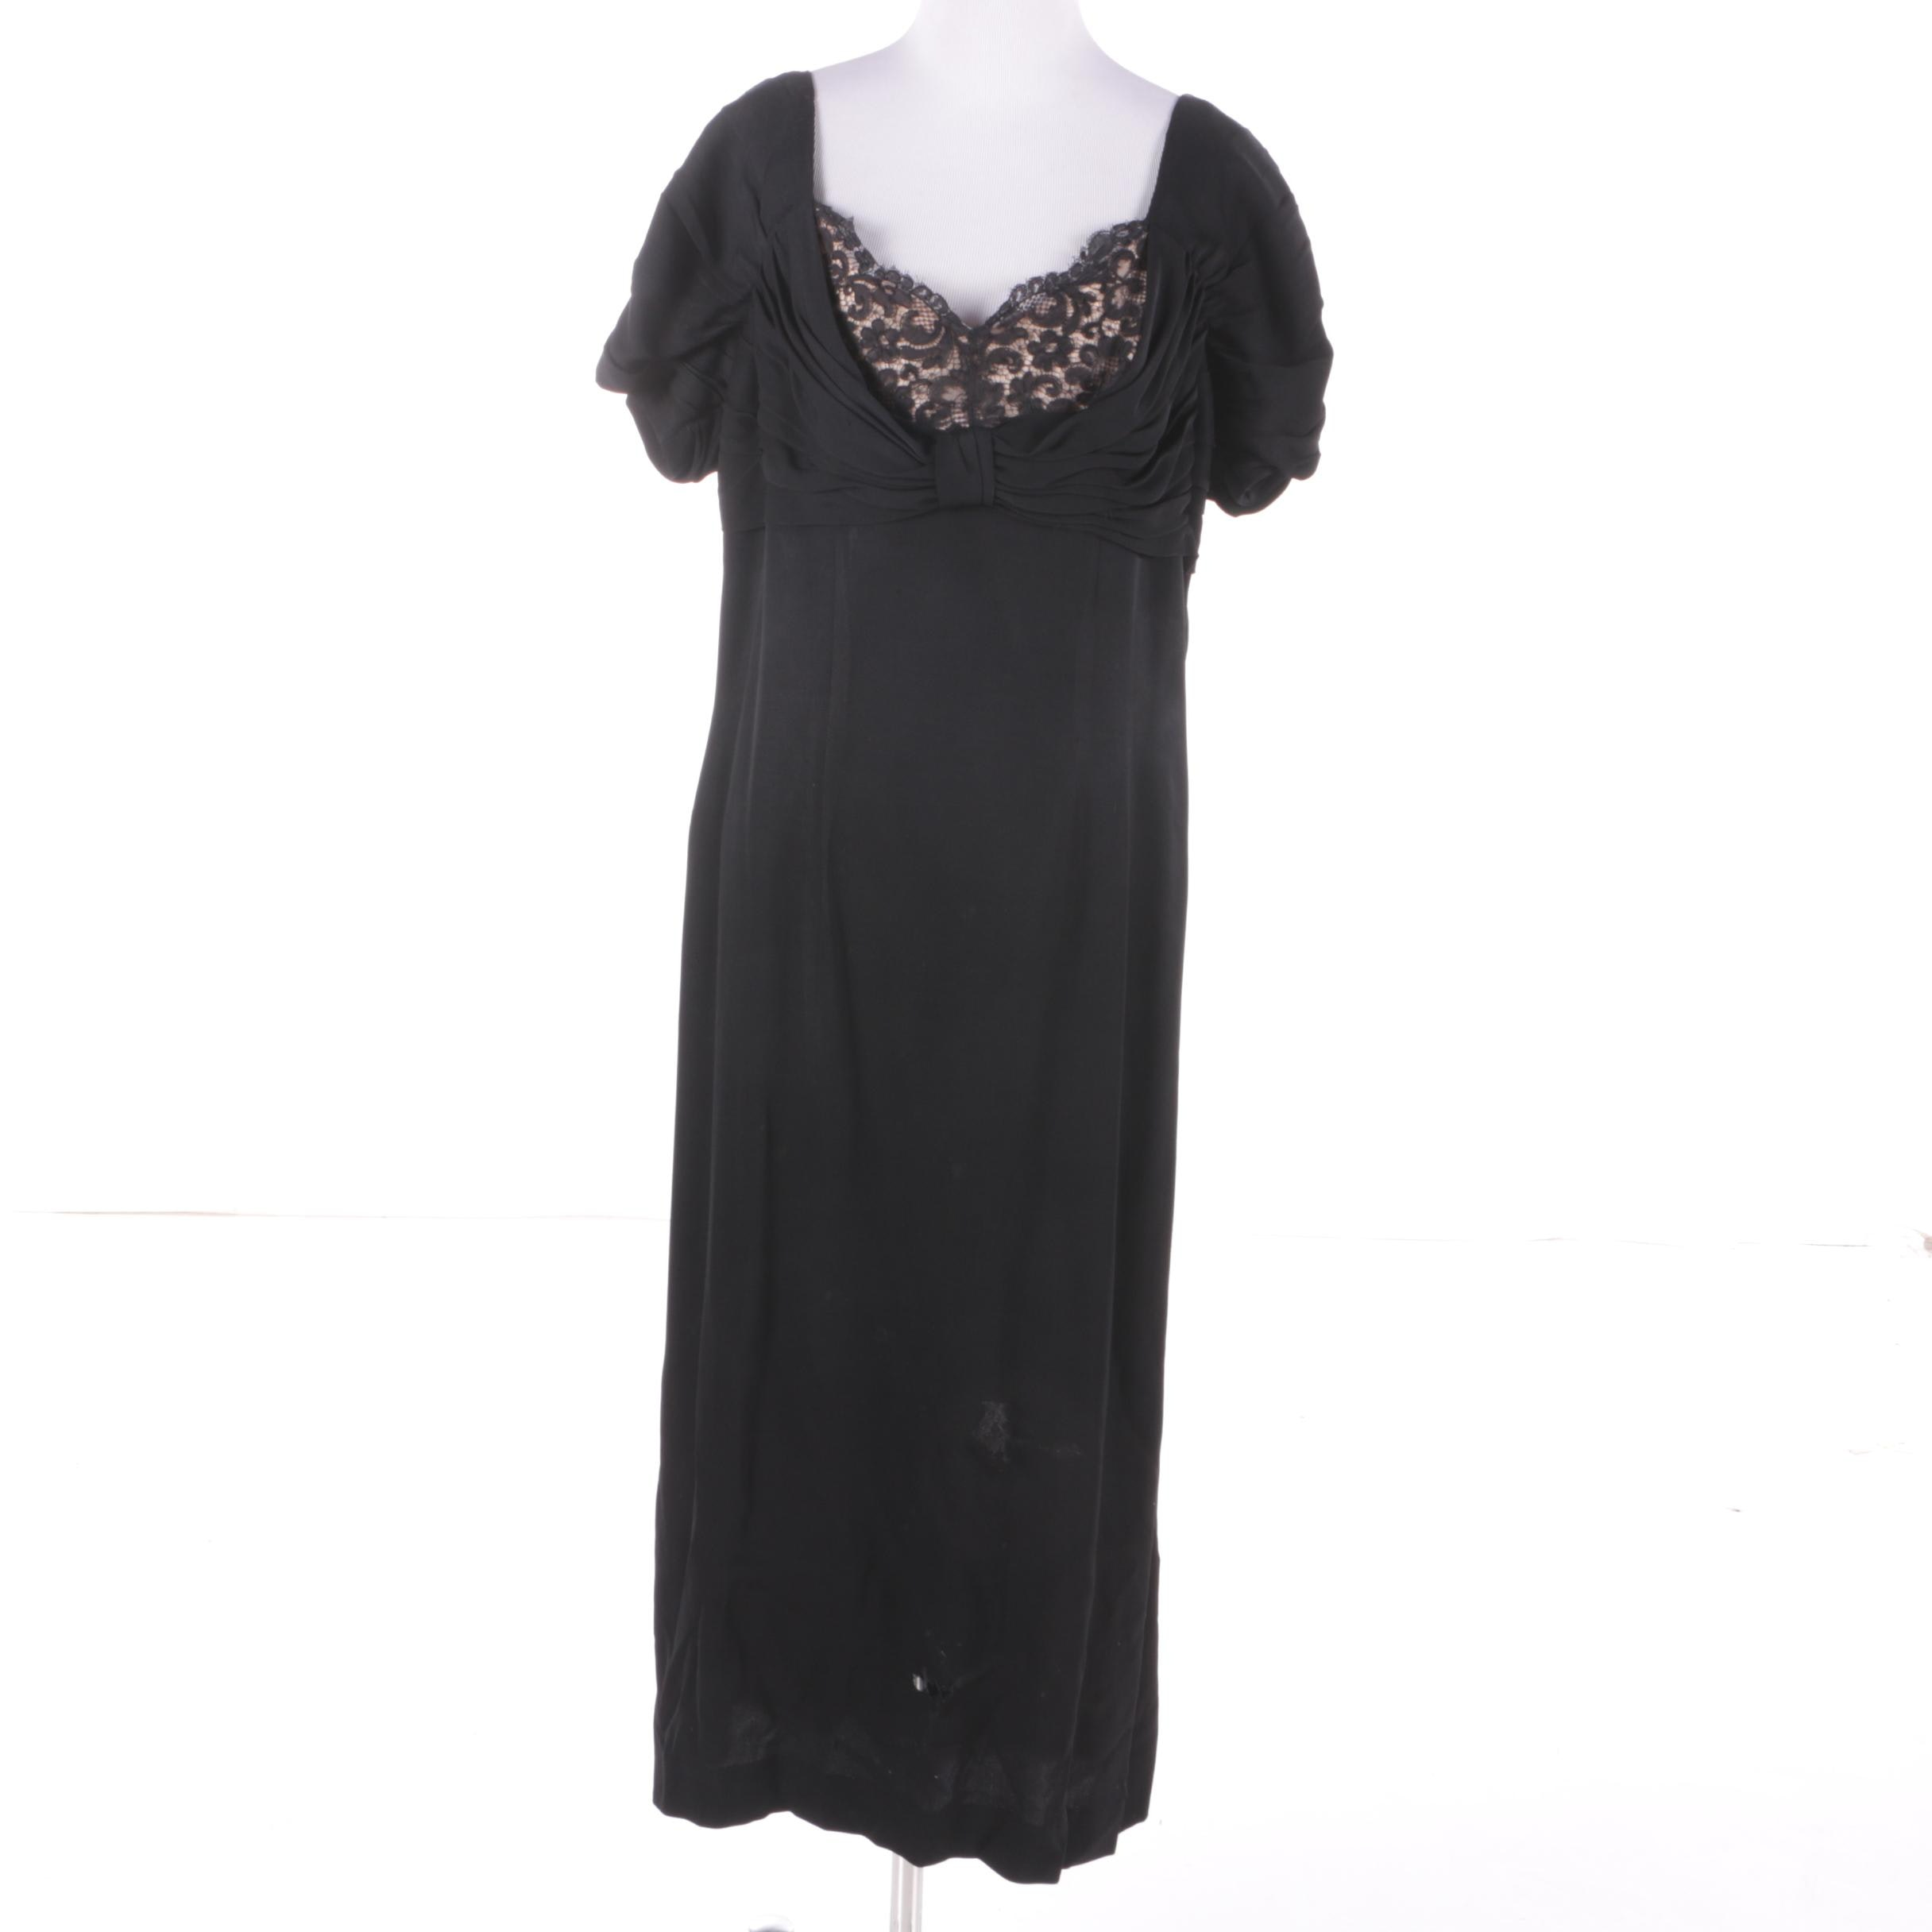 1940s Vintage Black Silk and Lace Drape Evening Dress